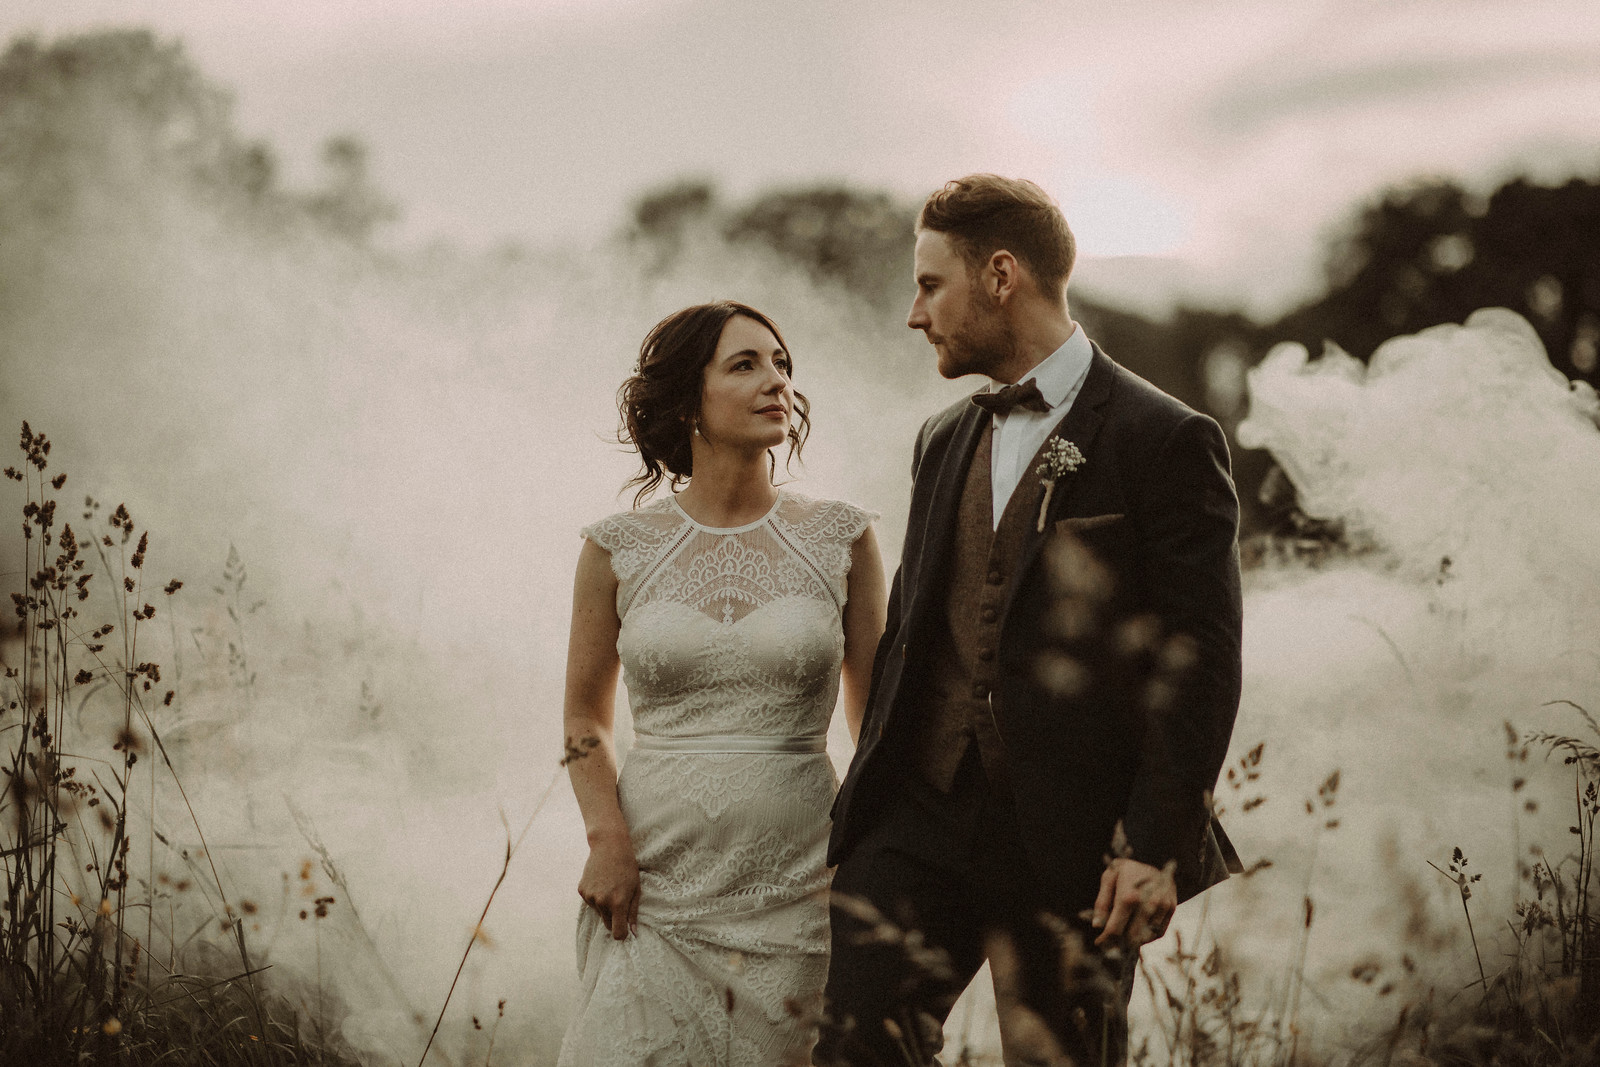 Bride and groom walk through the countryside whilst looking at each other. Smoke is in the background